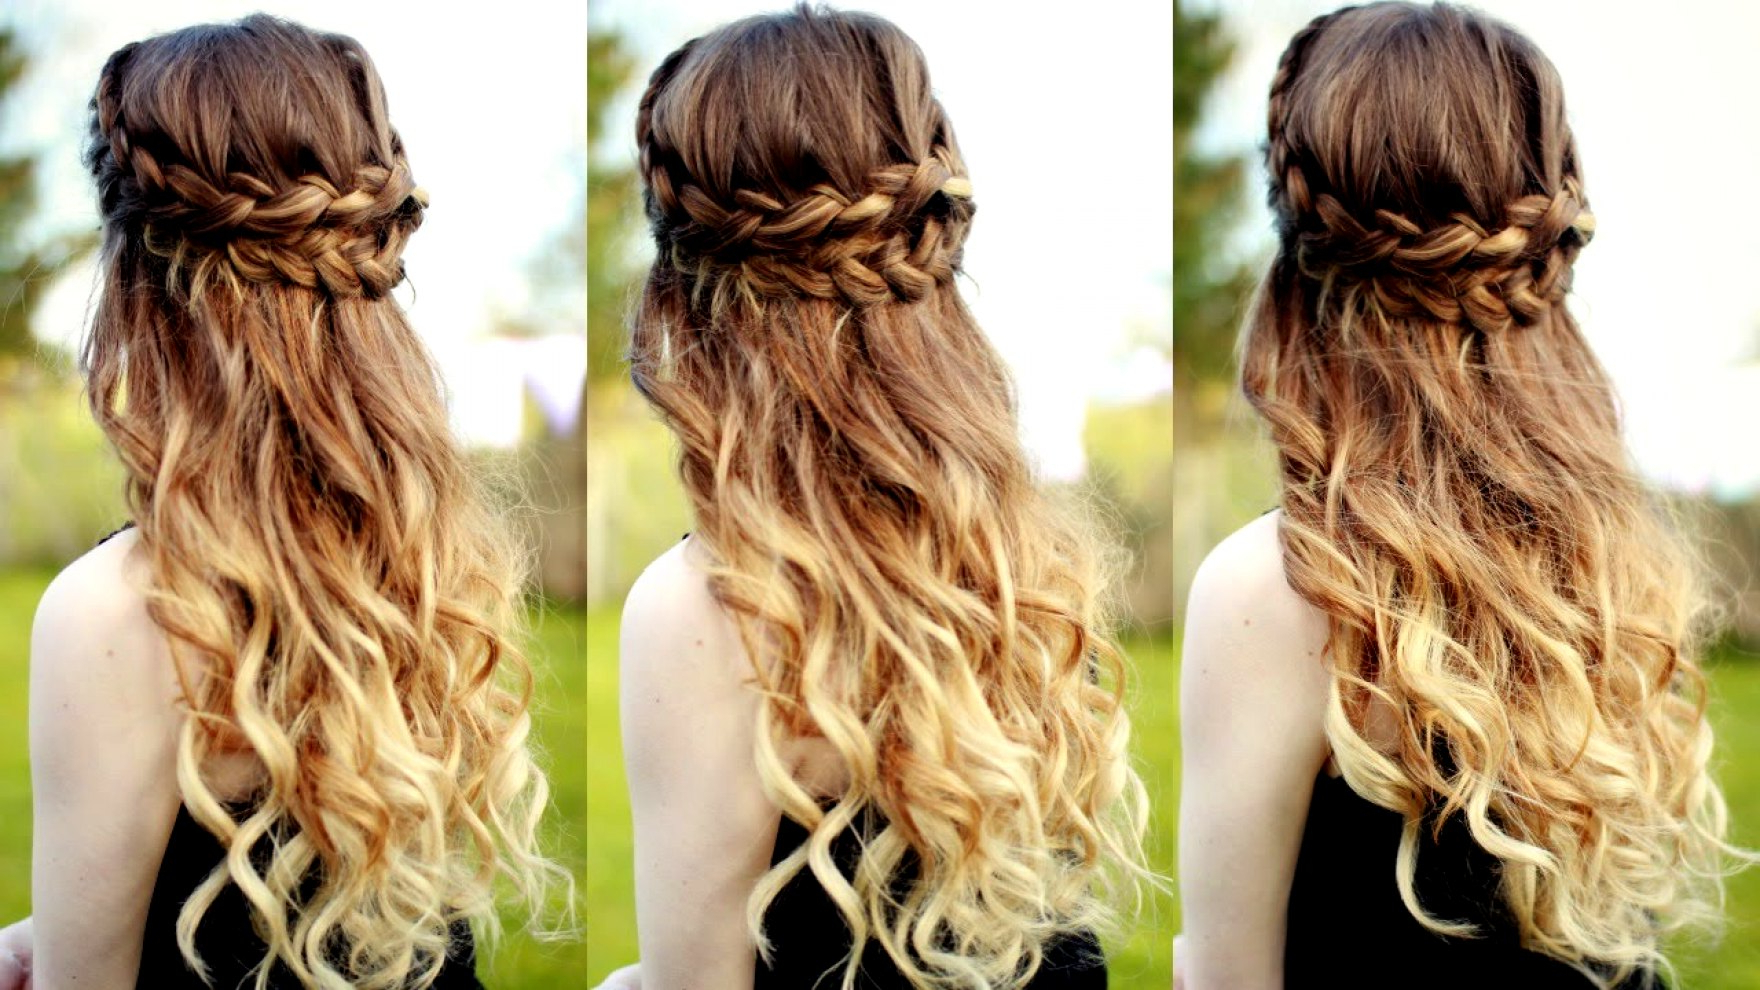 Half Up Down Braided Hairstyles Perfect Maxresdefault Images Throughout Most Recent Half Braided Hairstyles (View 13 of 20)